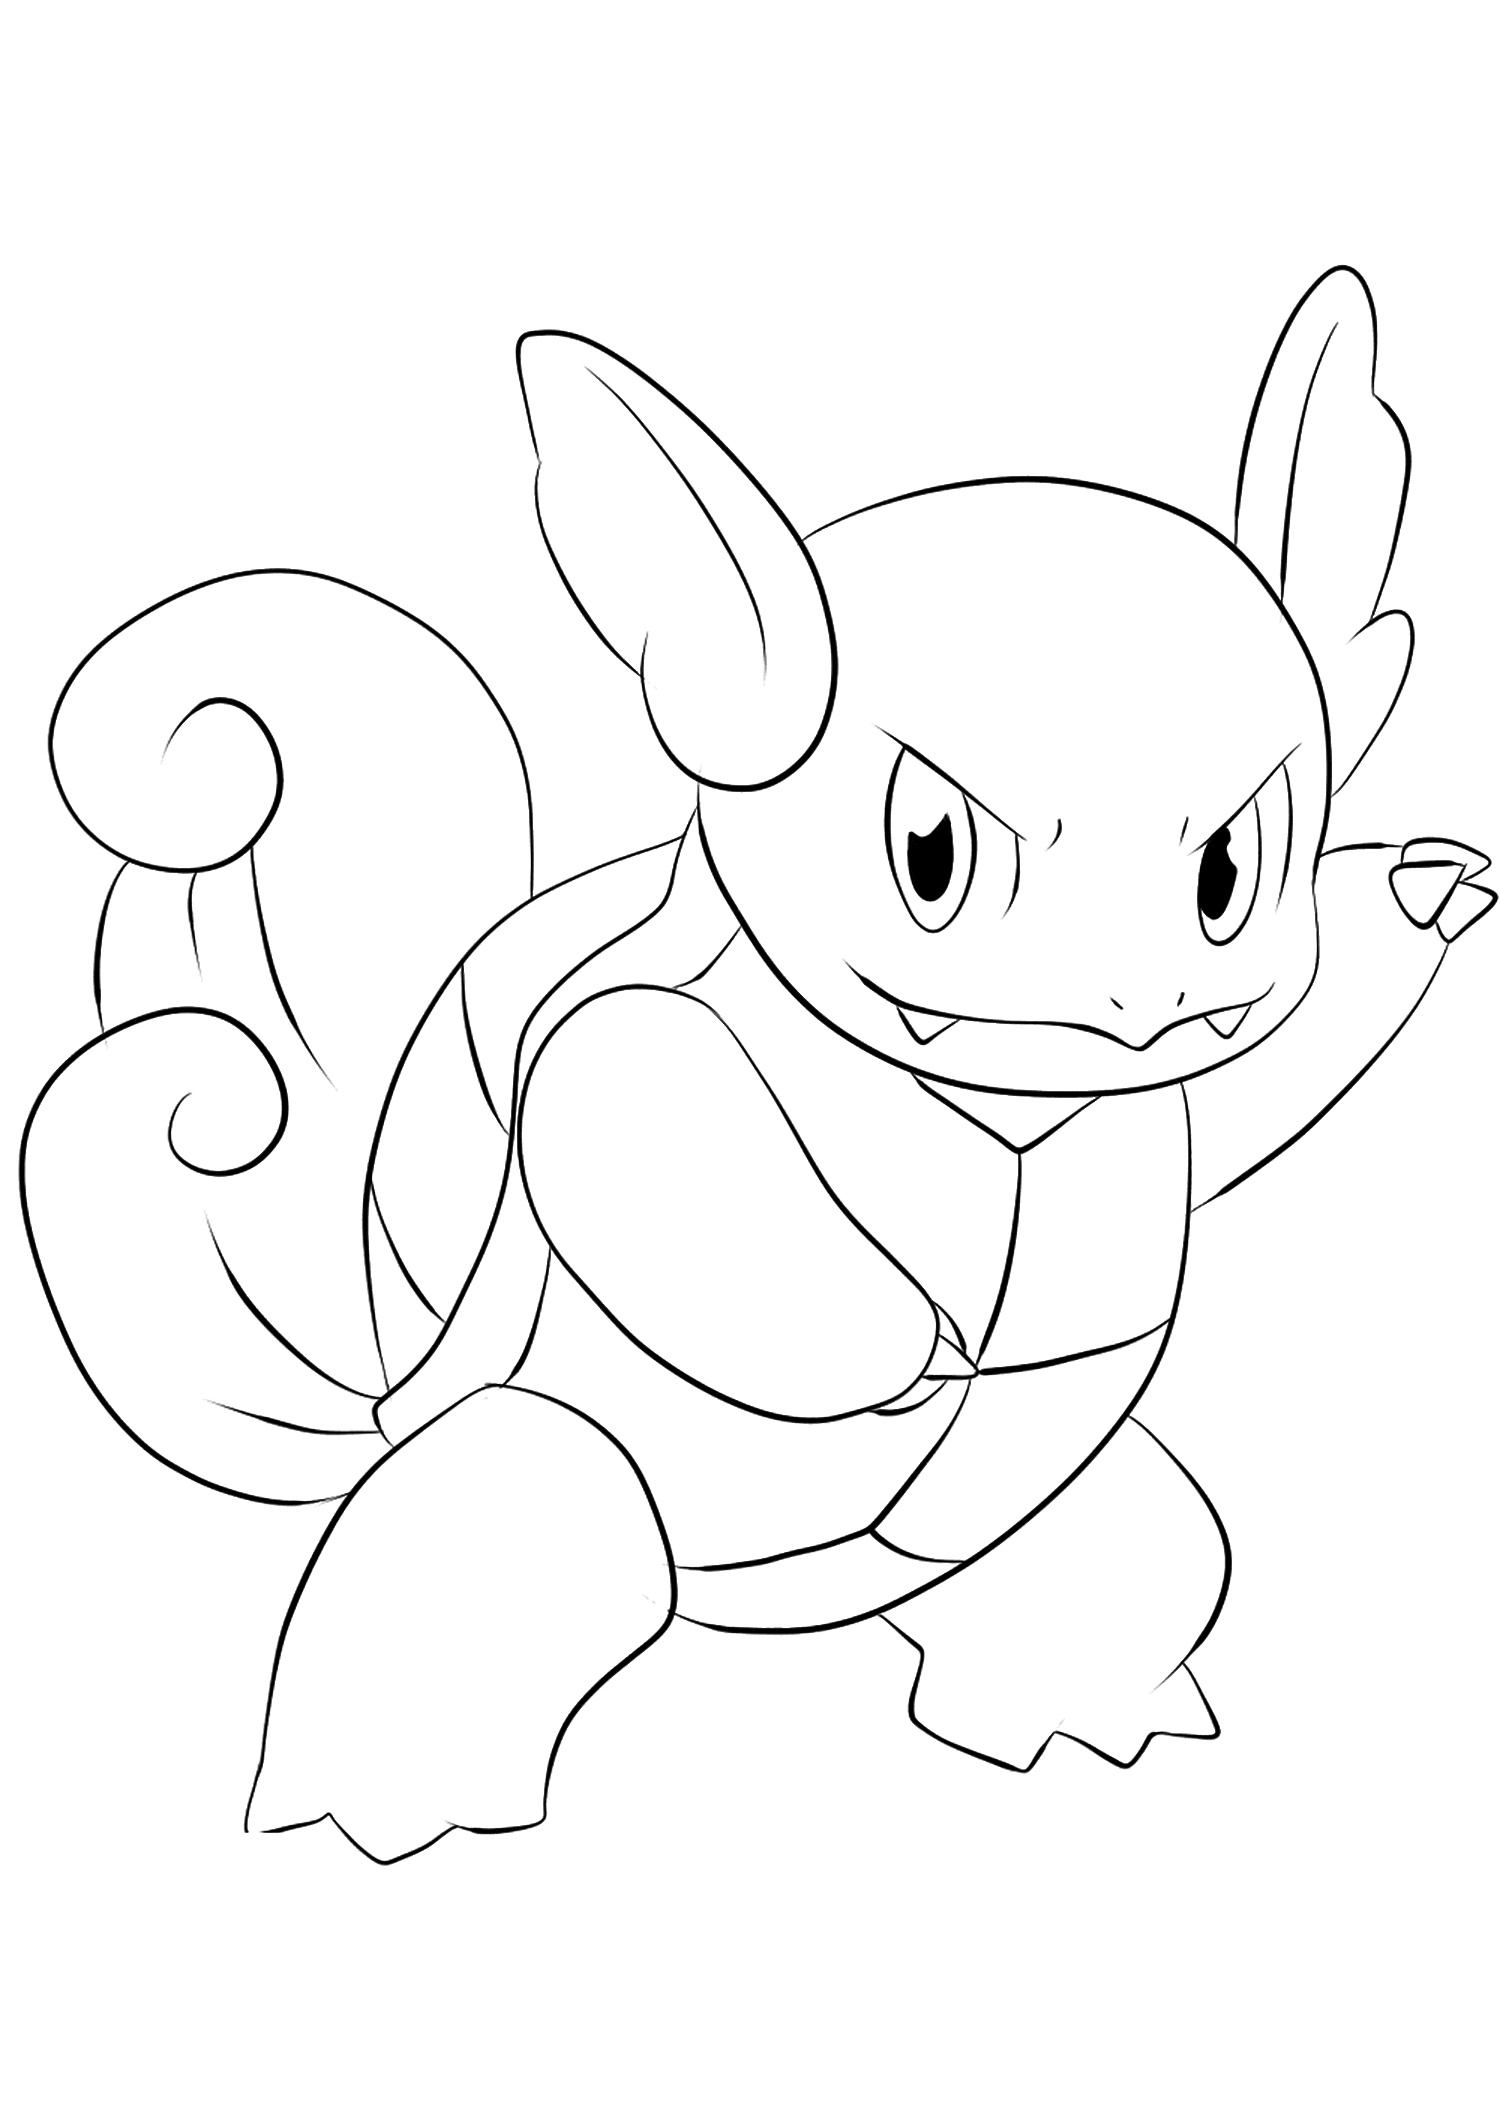 water pokemon coloring pages wartortle no08 pokemon generation i all pokemon pages coloring water pokemon